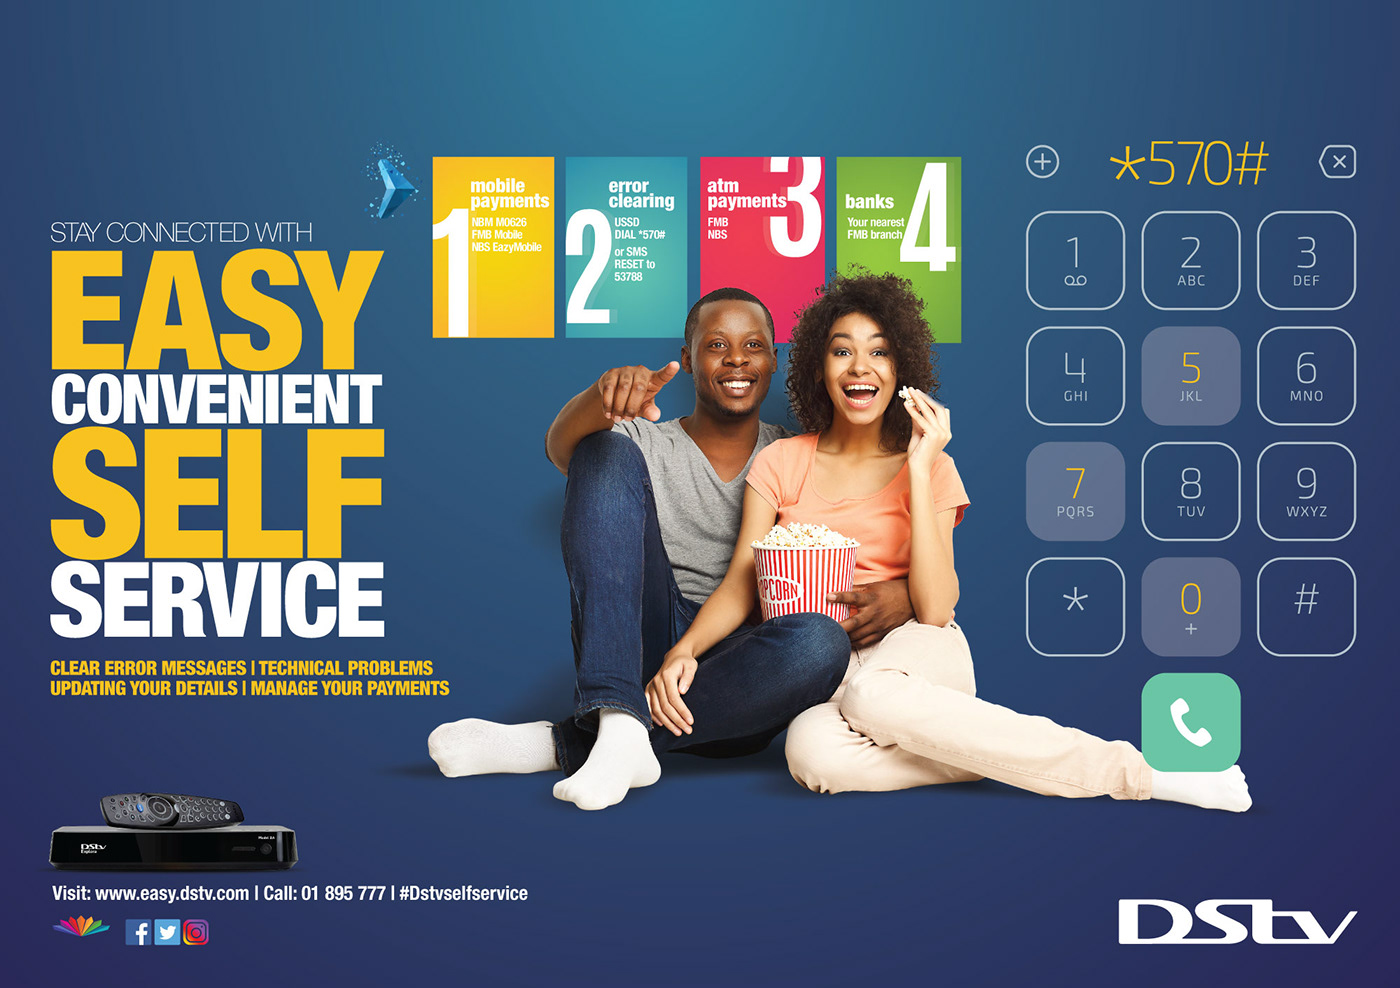 DSTV Malawi Self Service Campaign on Behance